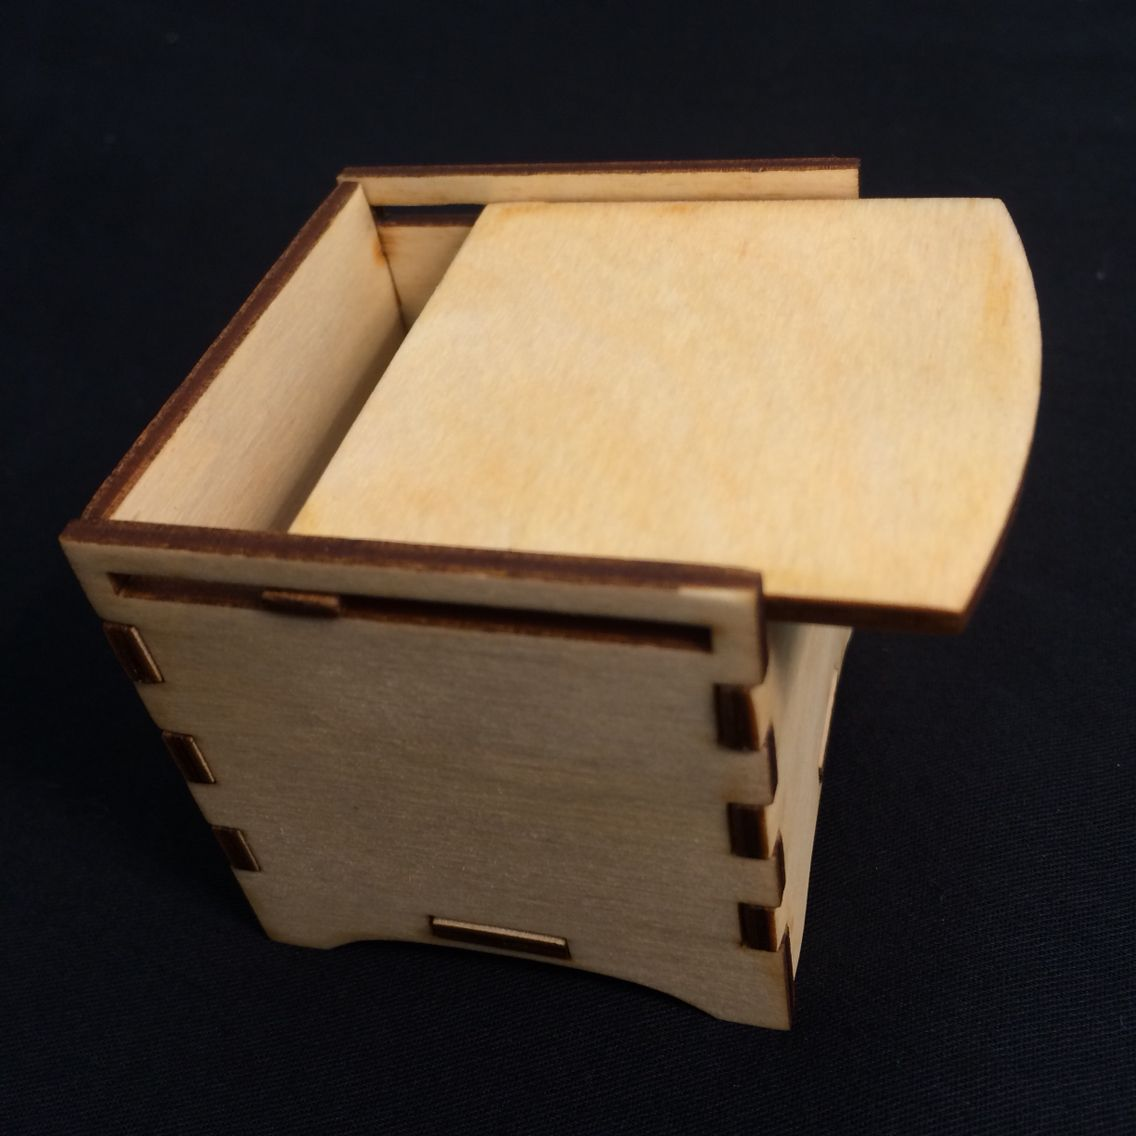 Snap together laser box | Student Laser Boxes | Laser cut